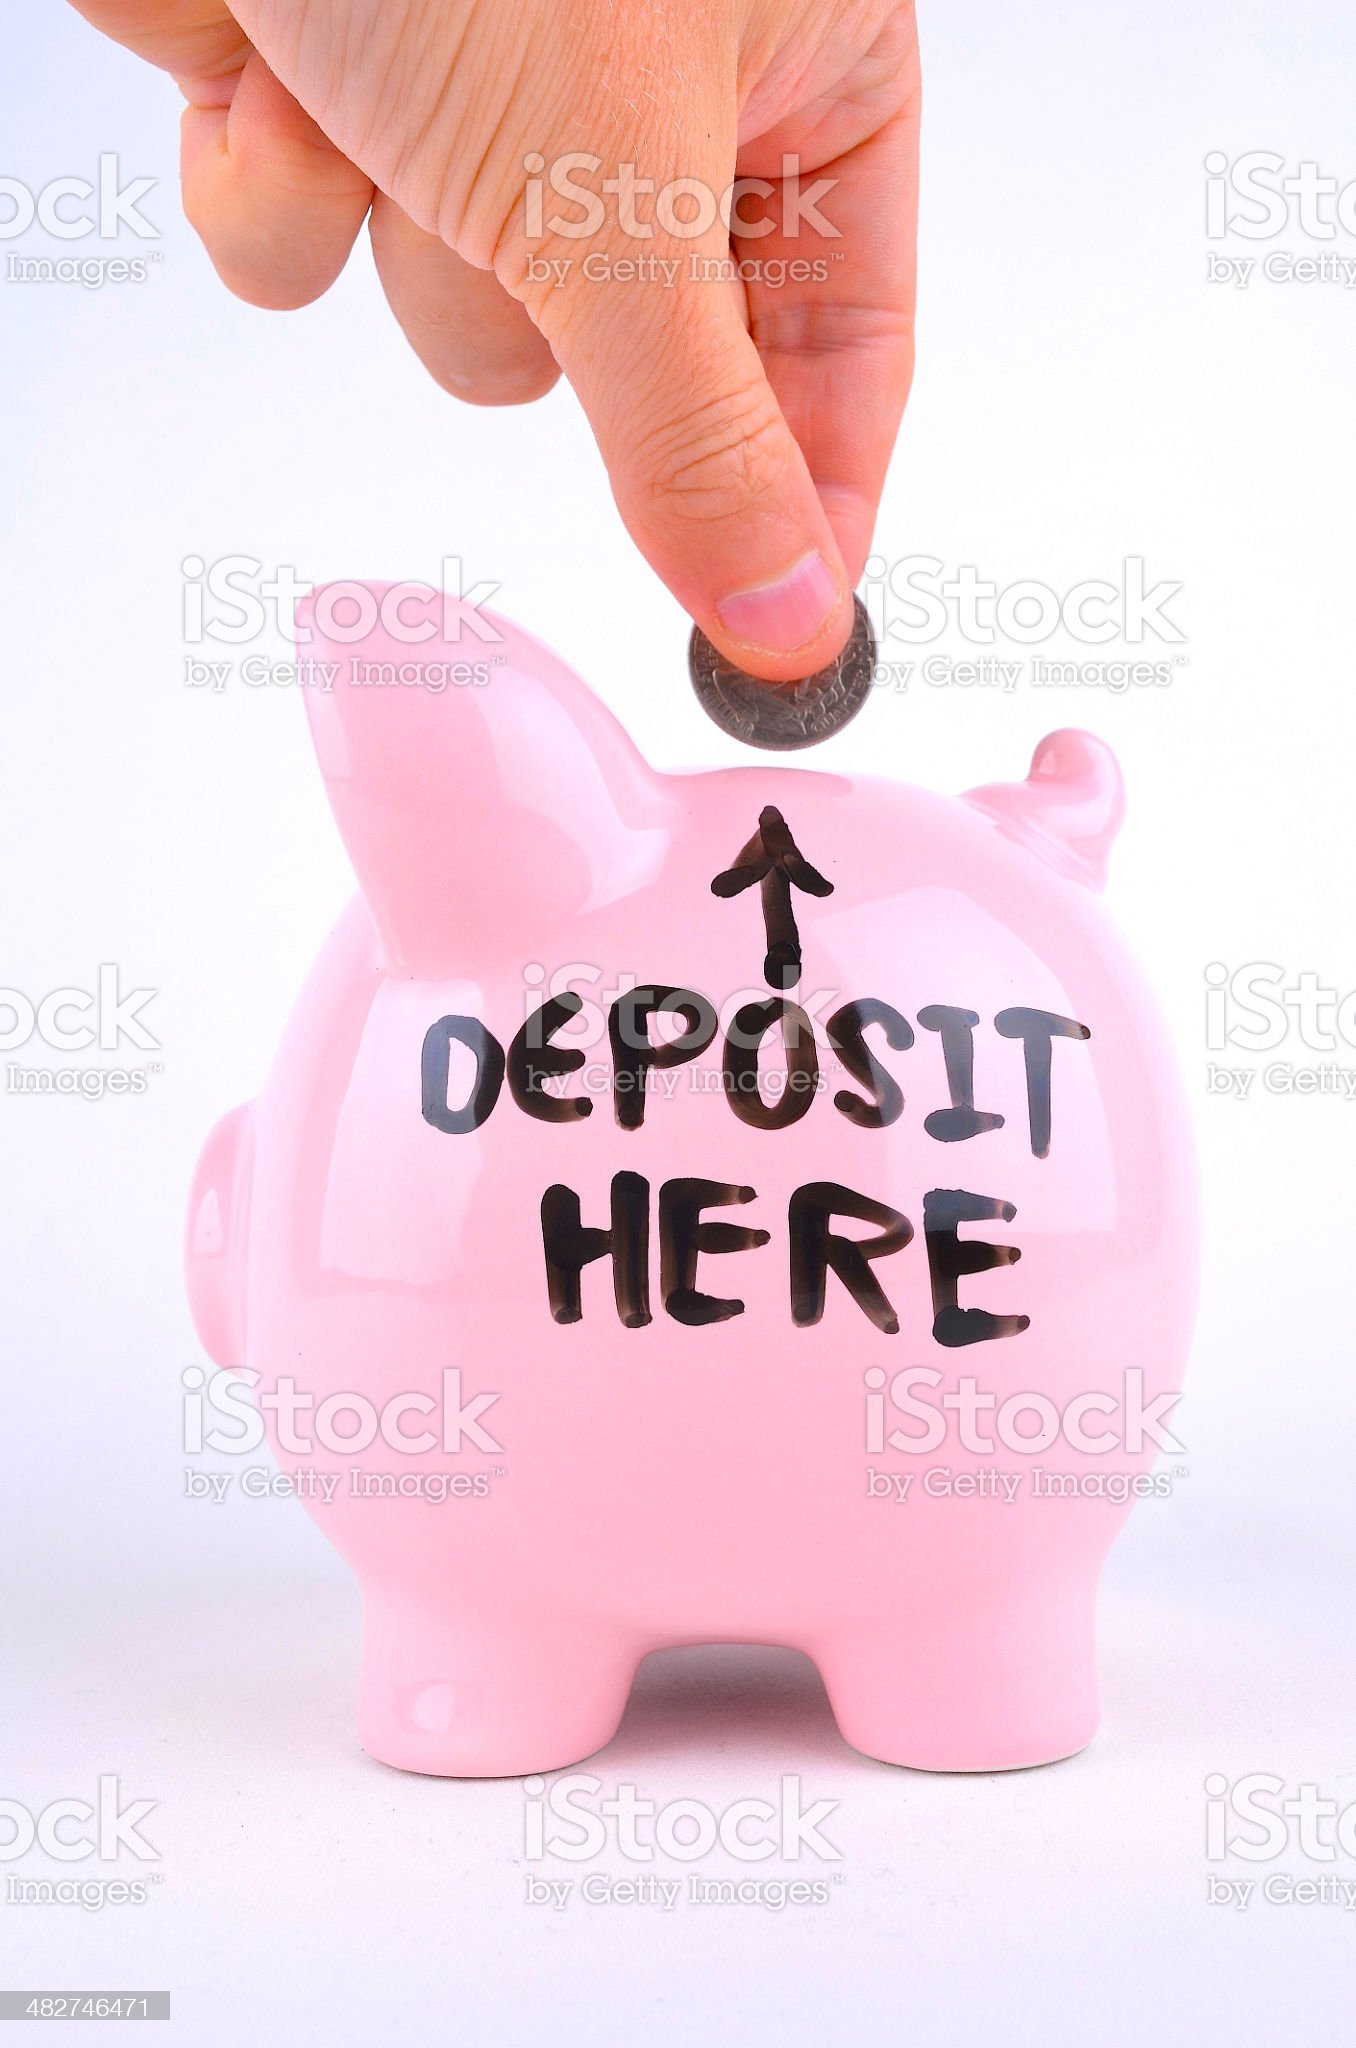 Deposit Here royalty-free stock photo